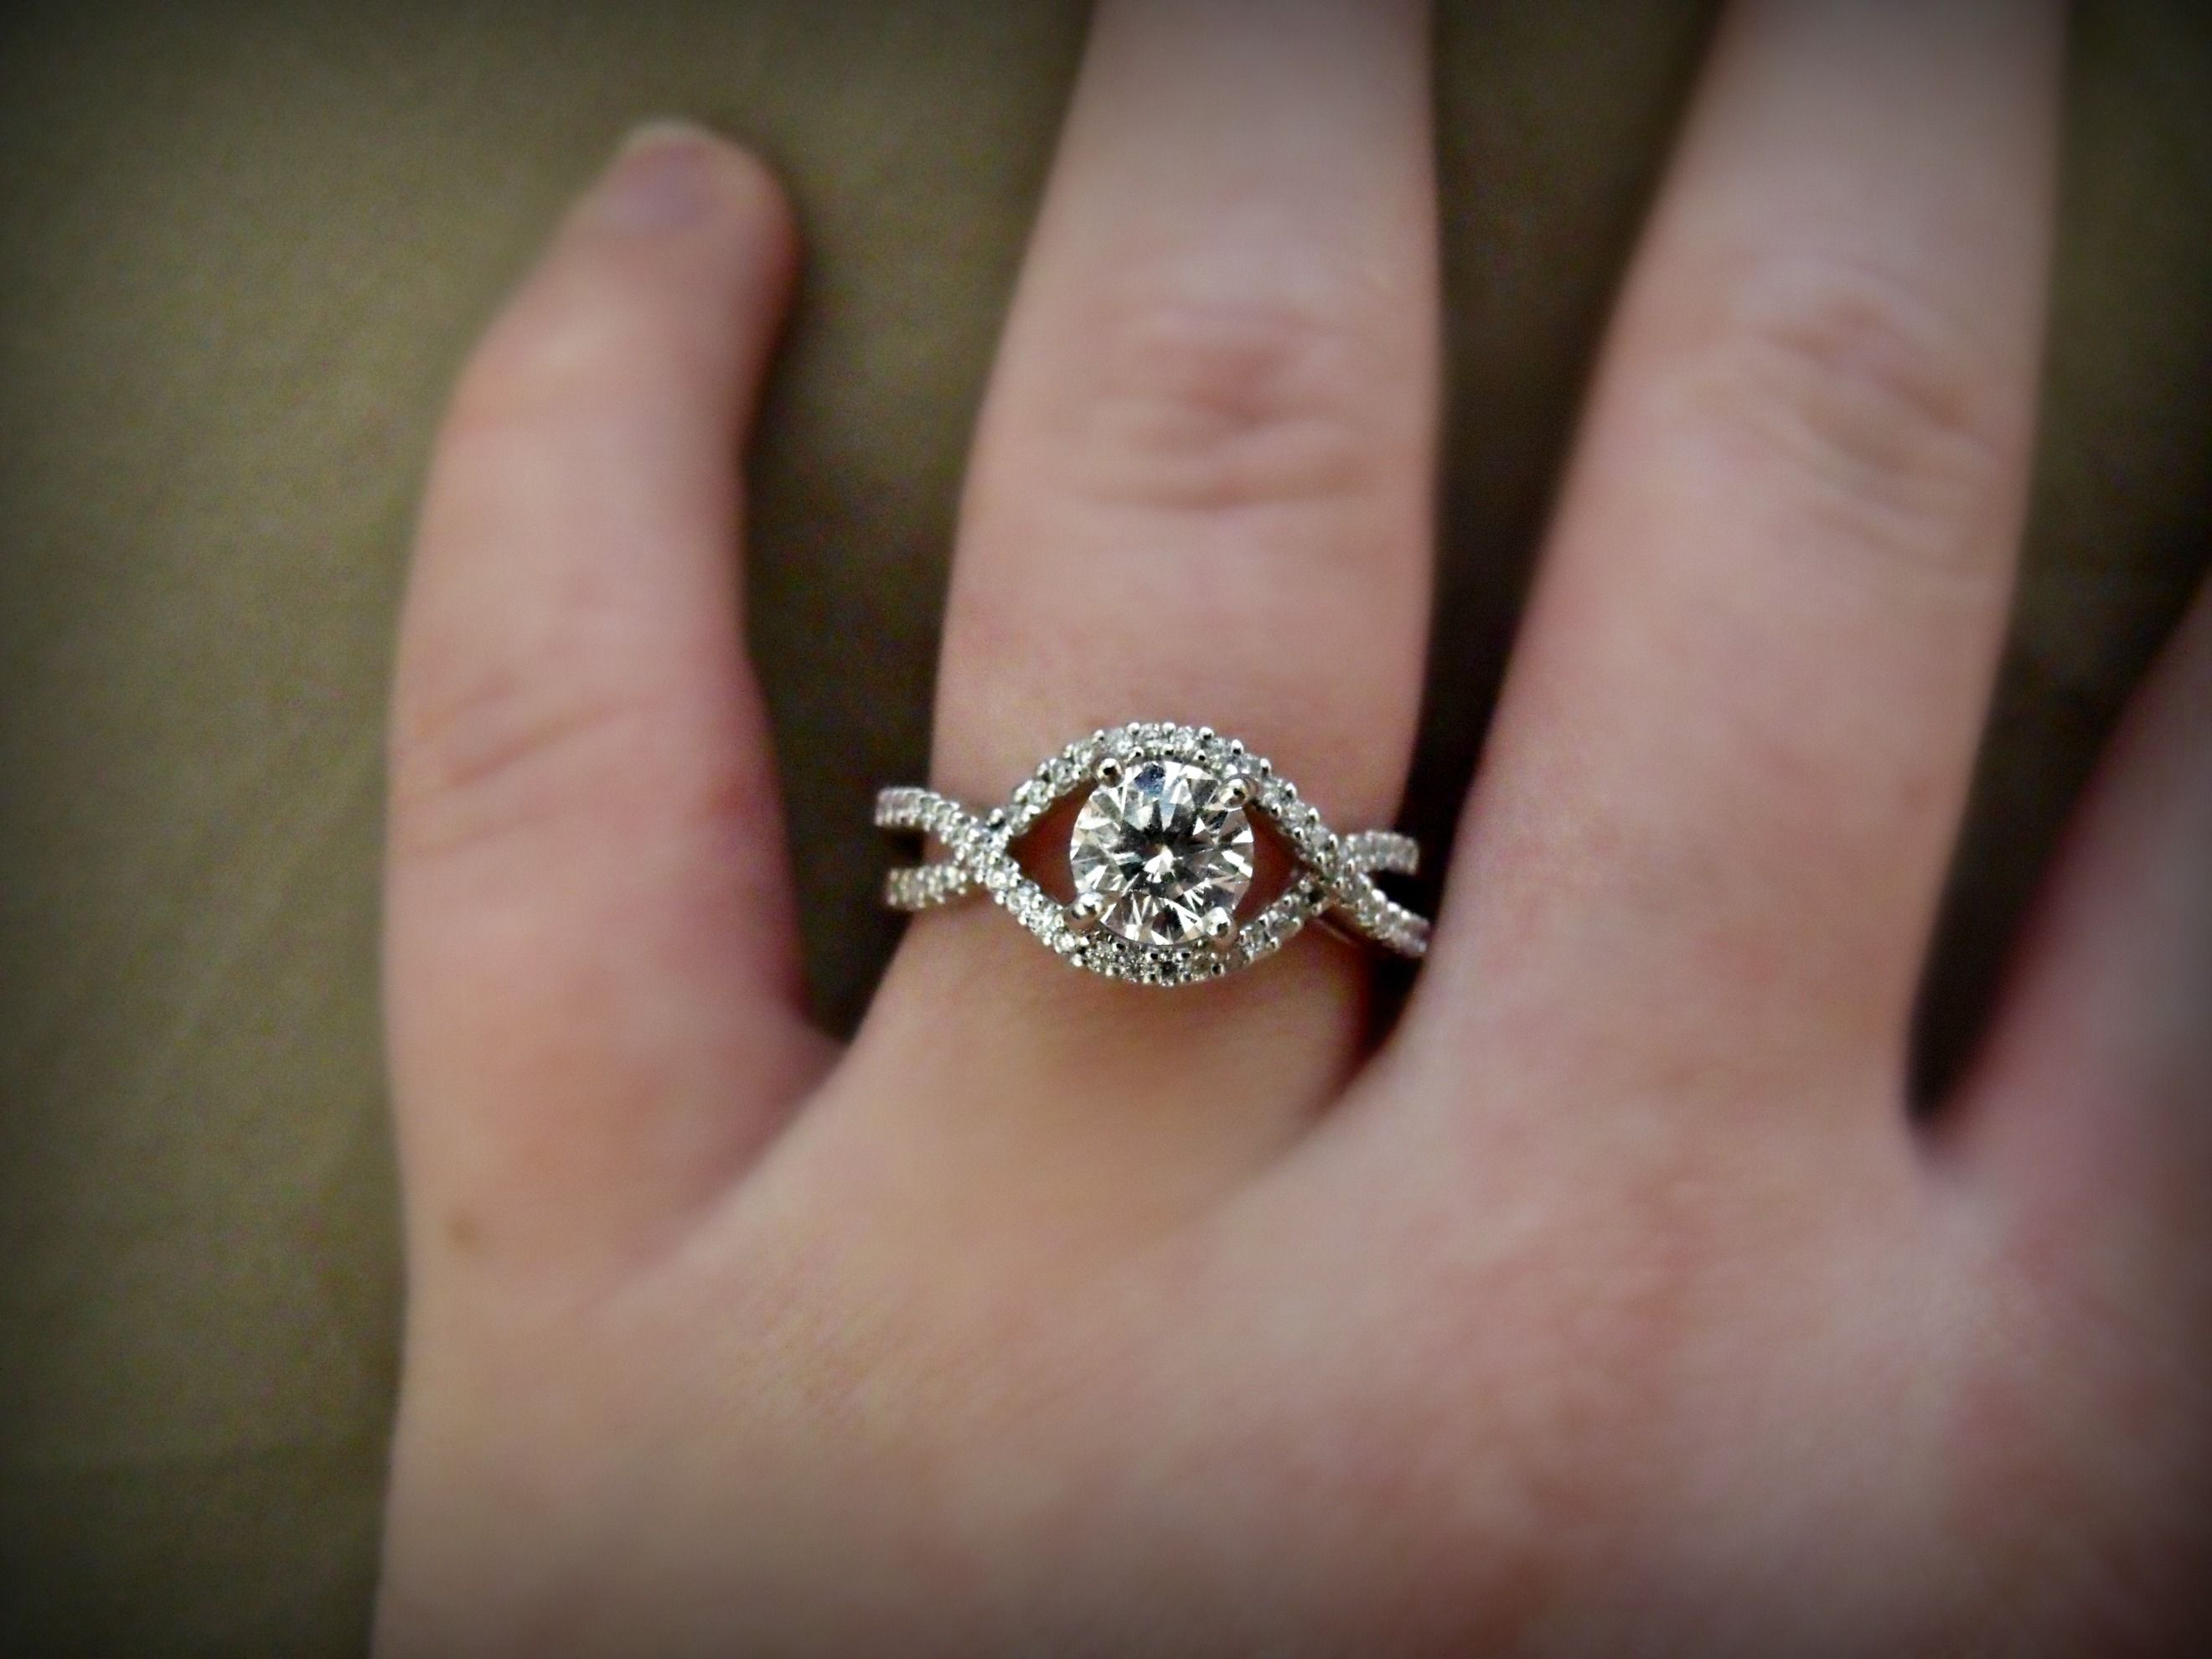 My Engagement Ring Please Excuse My Pregnancy Caused Fat Fingers Lol I M The One Wearing White